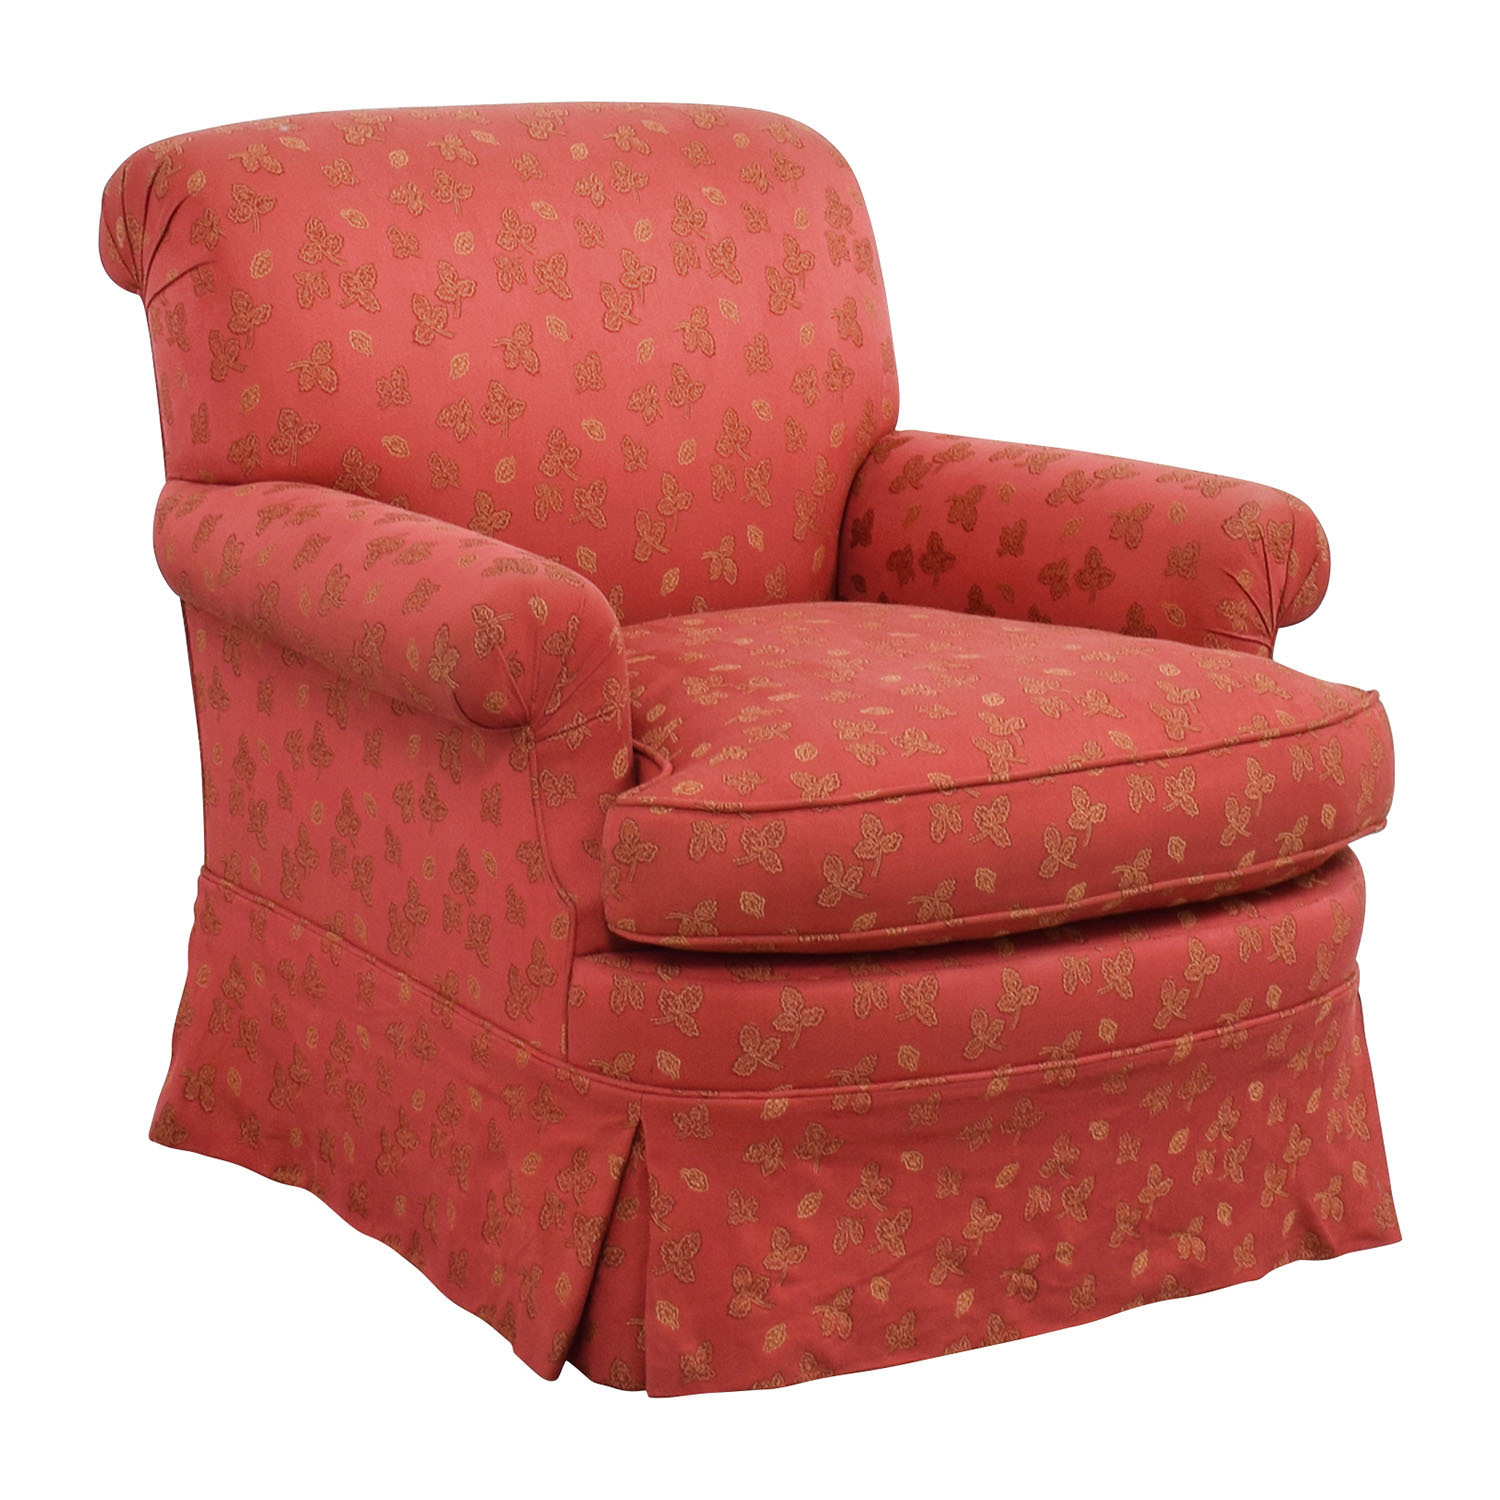 84 off custom red upholstered skirted accent chair chairs for Upholstered accent chairs cheap